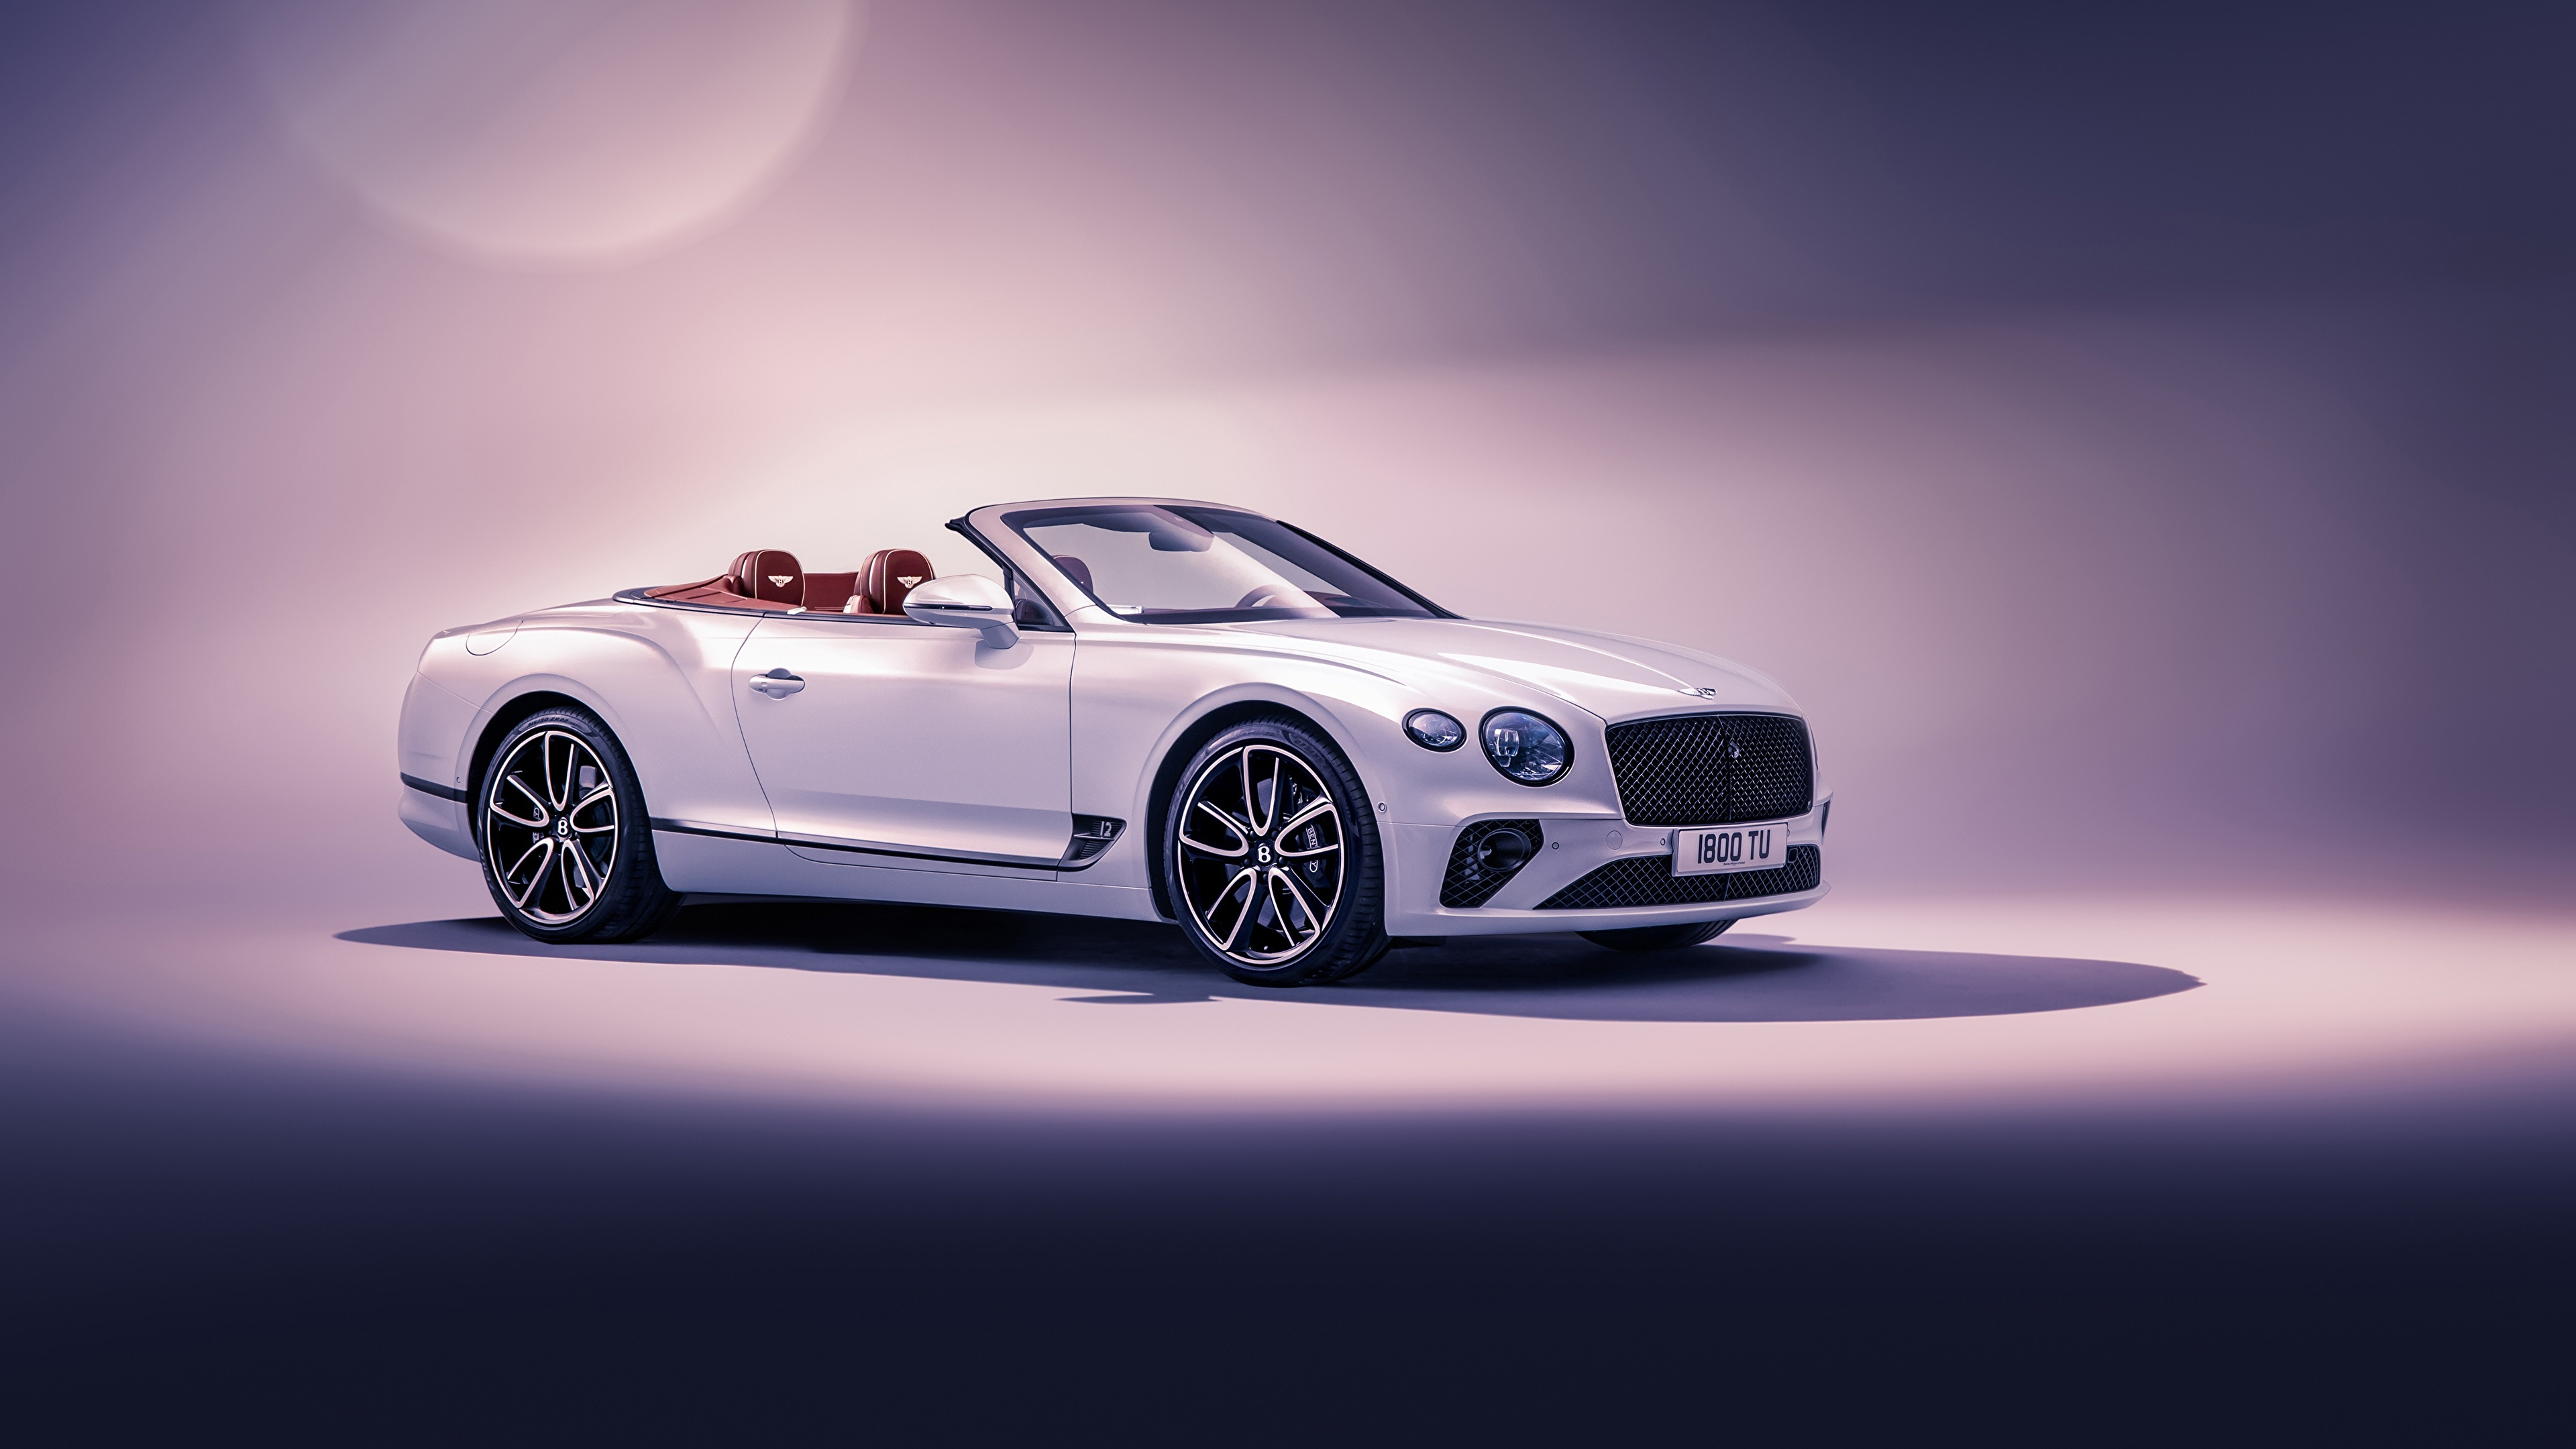 Pictures Bentley Continental GT Convertible 2019 Cabriolet 3840x2160